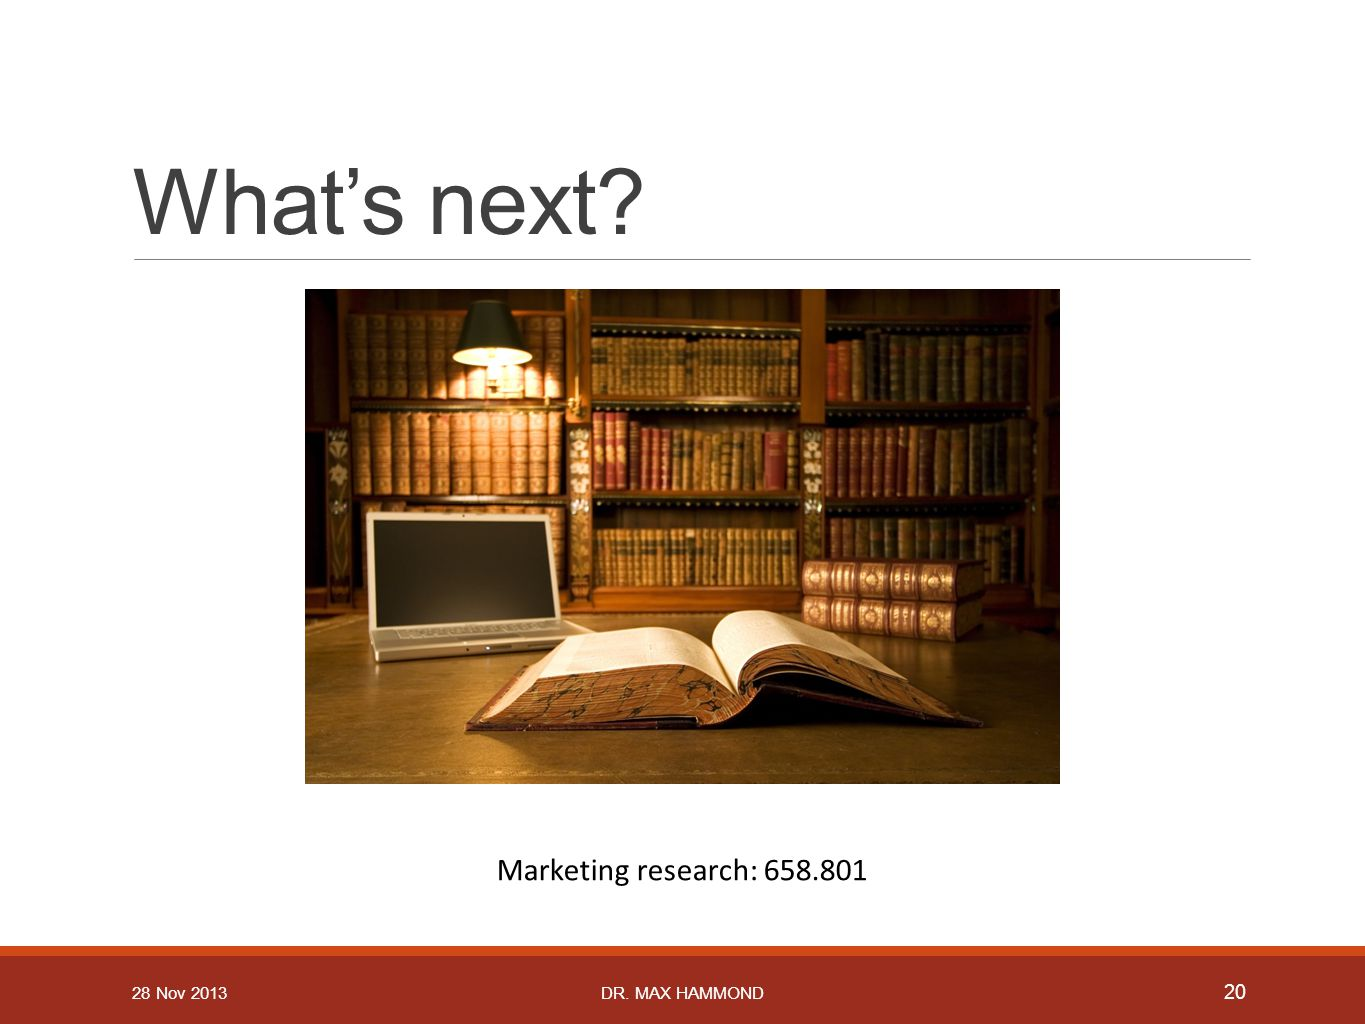 What's next? Marketing research: 658.801 20 DR. MAX HAMMOND28 Nov 2013